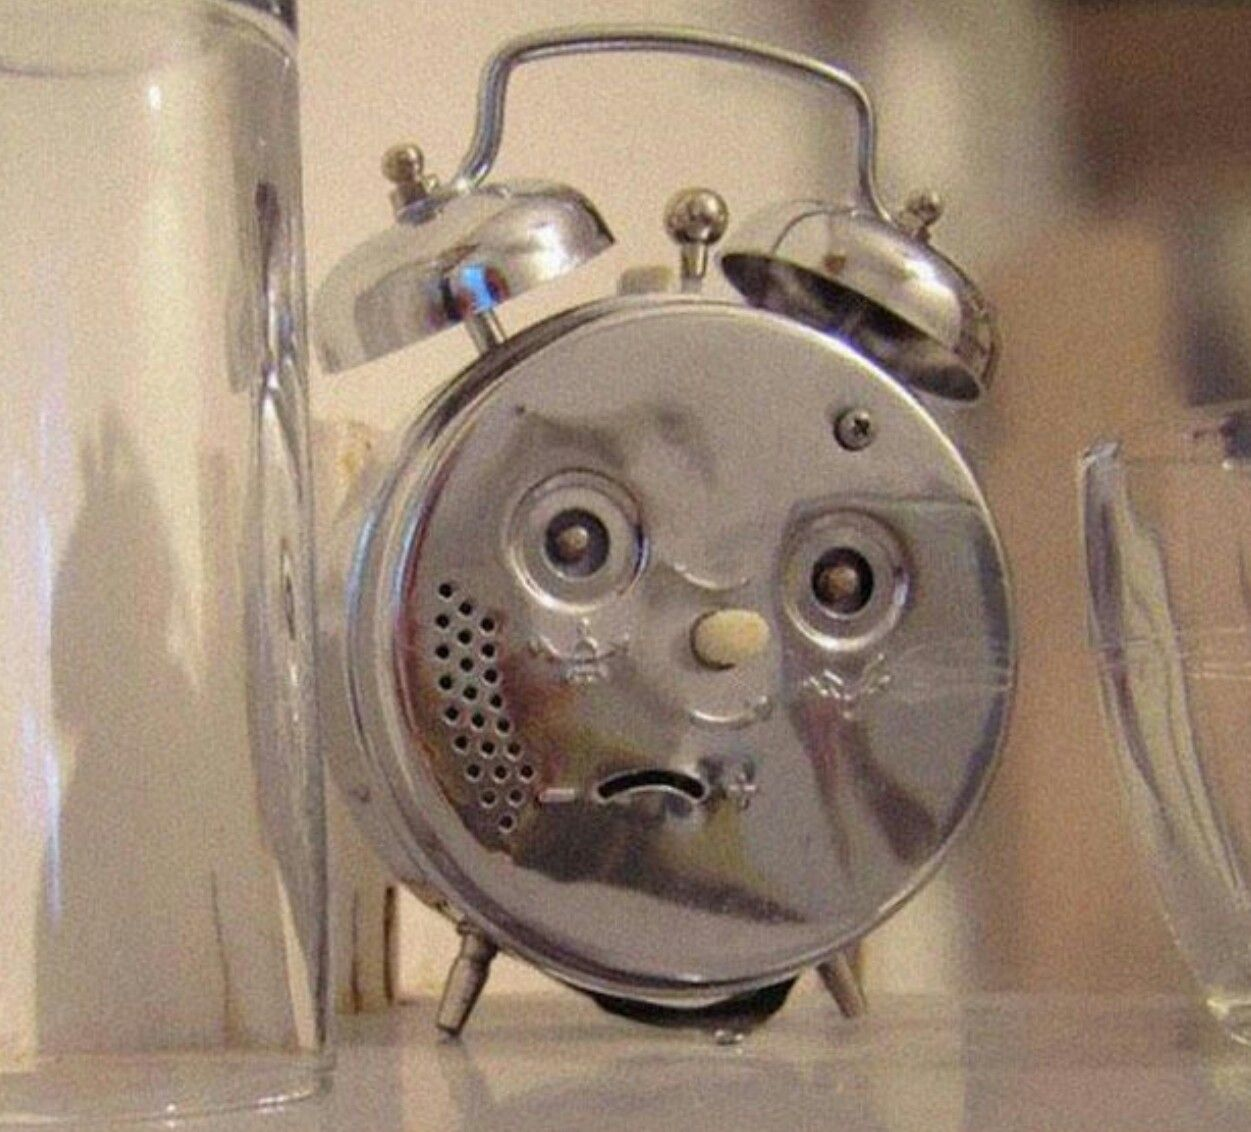 My clock in the morning.